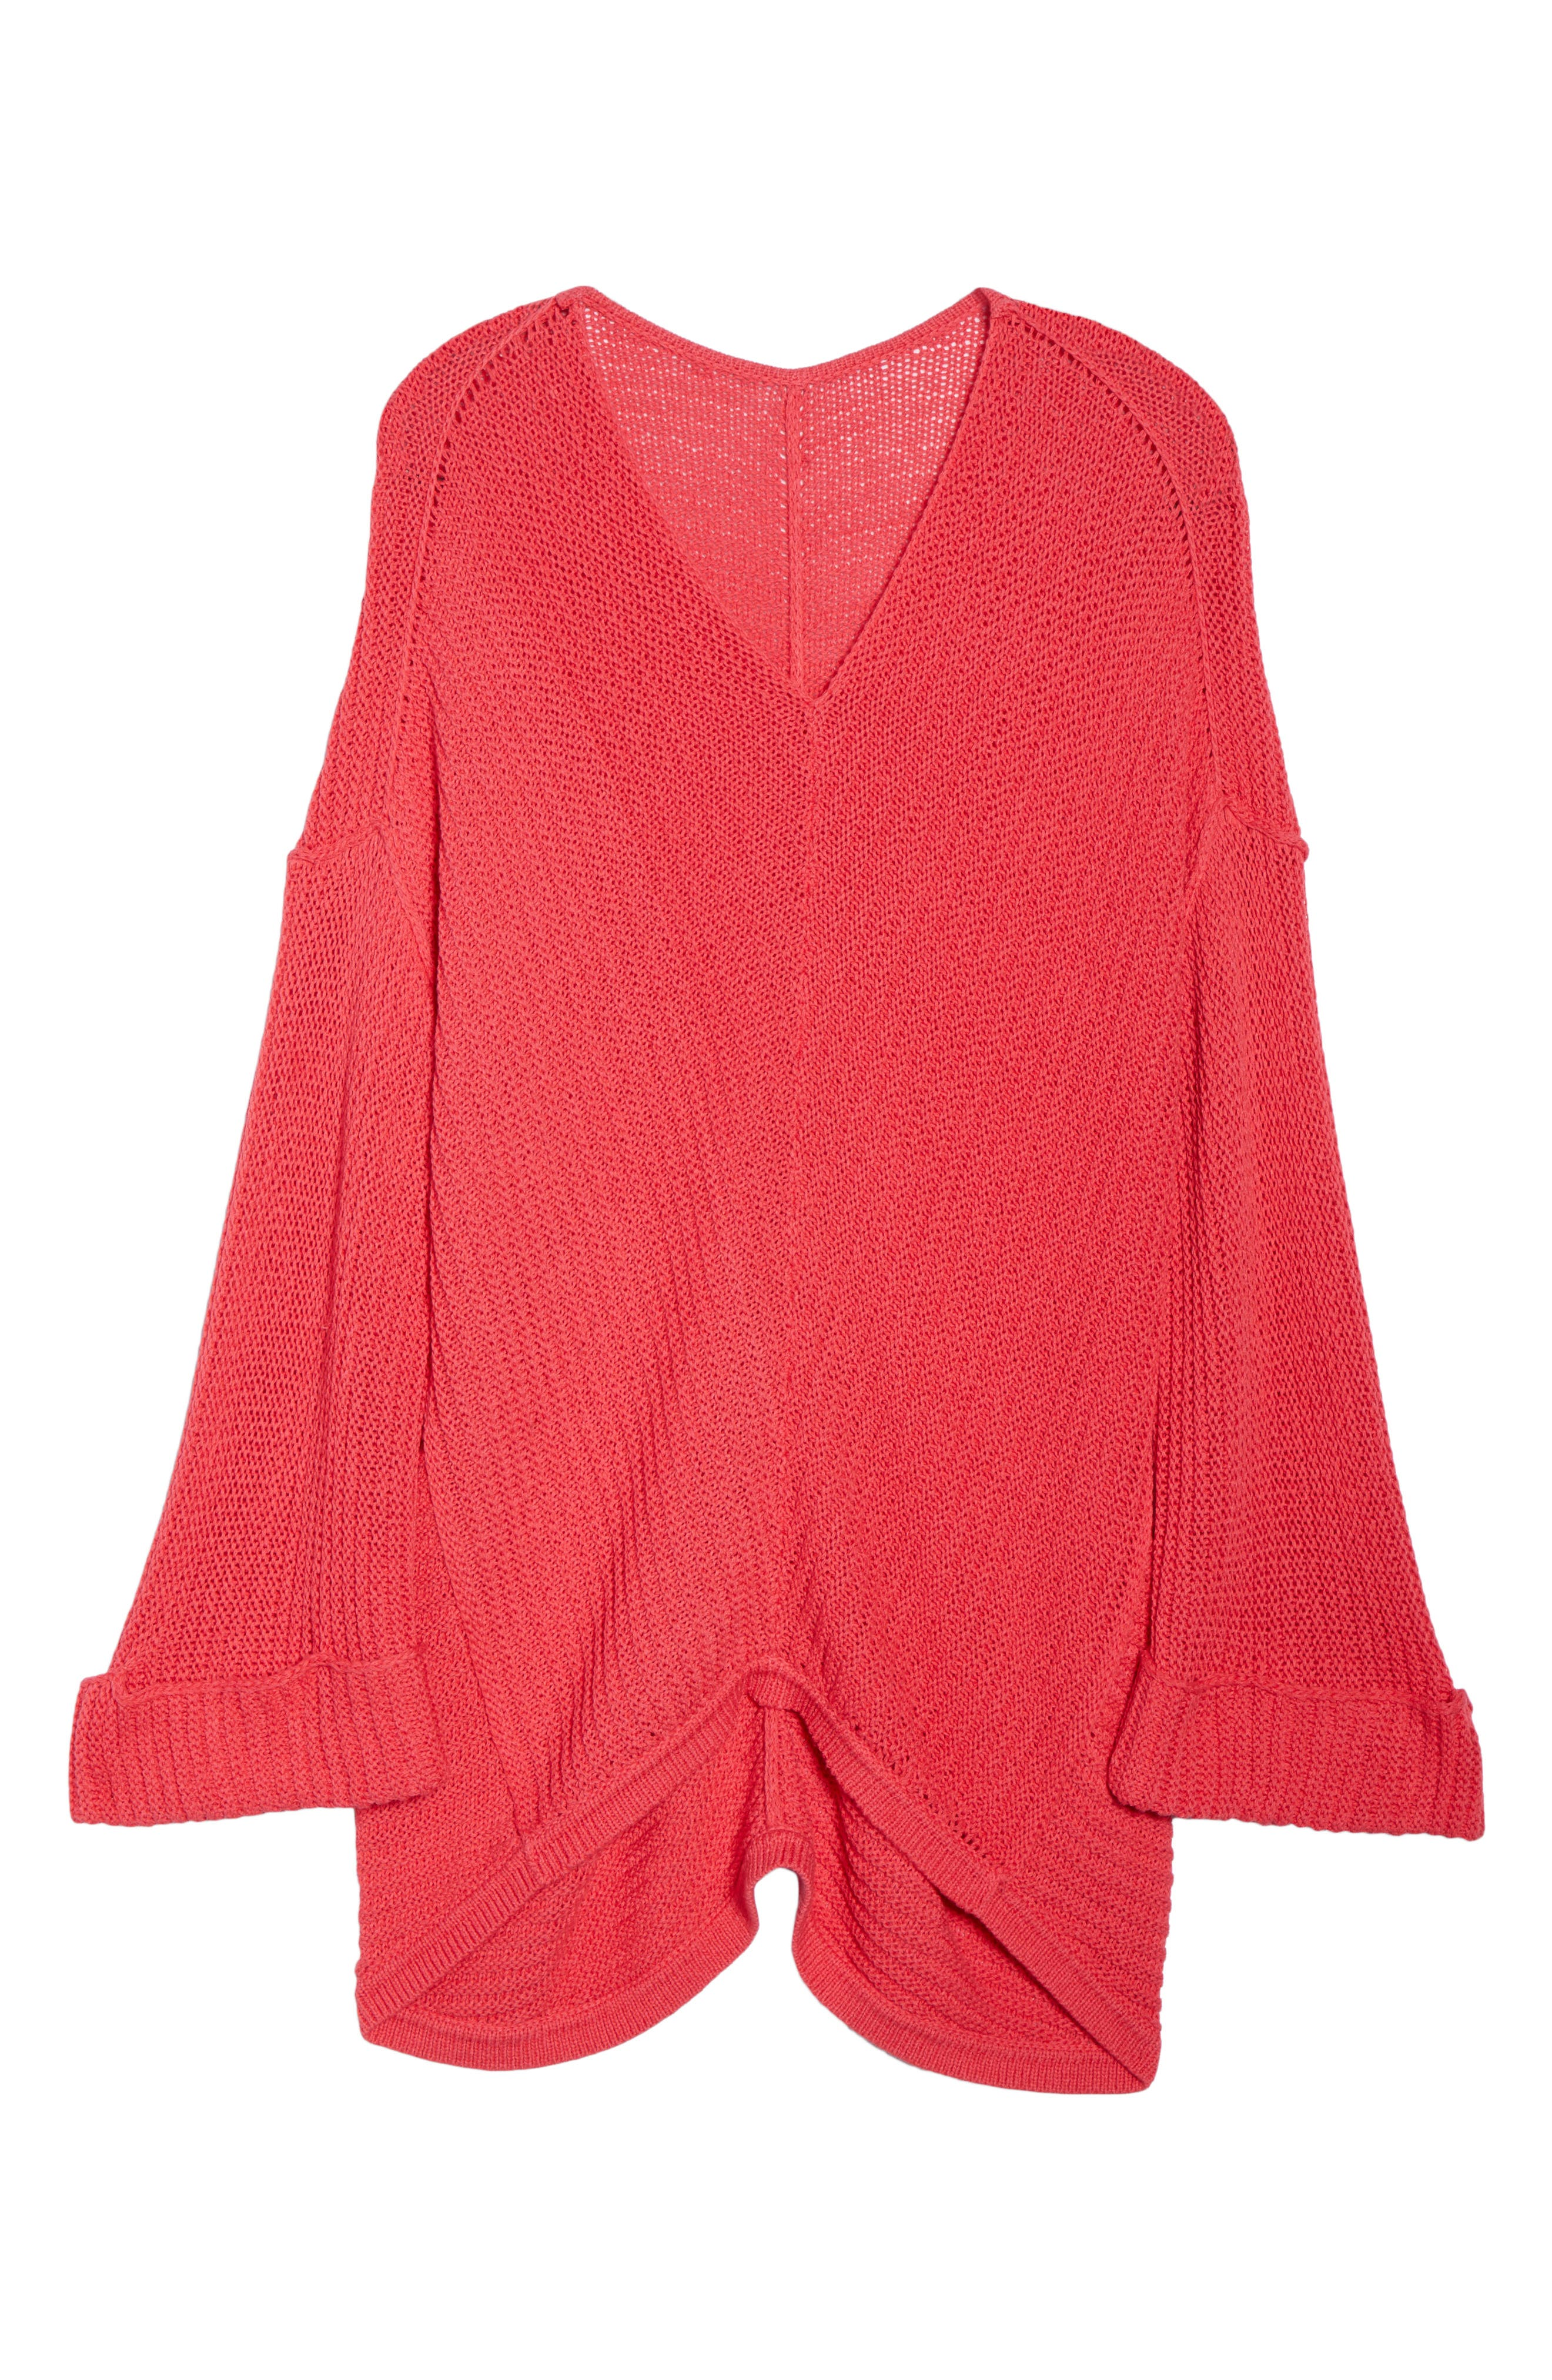 Cuffed Bell Sleeve Sweater,                             Alternate thumbnail 18, color,